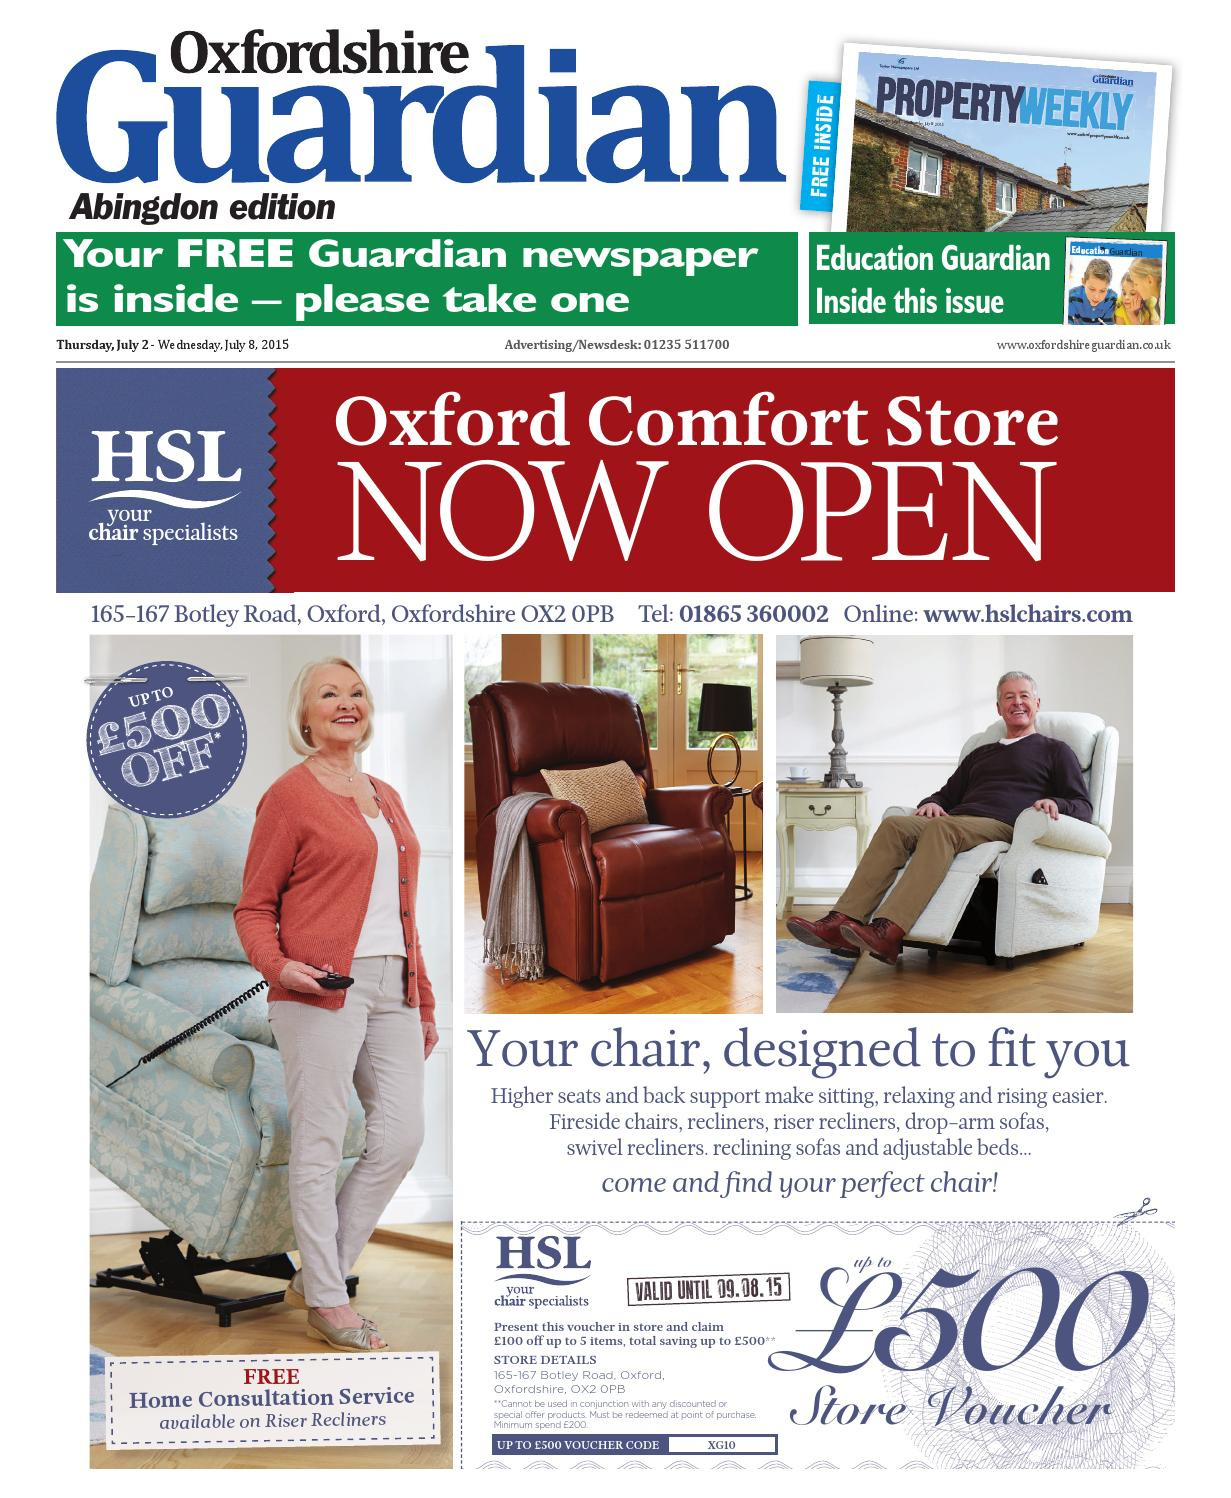 Home gt dorset leather dual motor lift and rise chair - Home Gt Dorset Leather Dual Motor Lift And Rise Chair 35